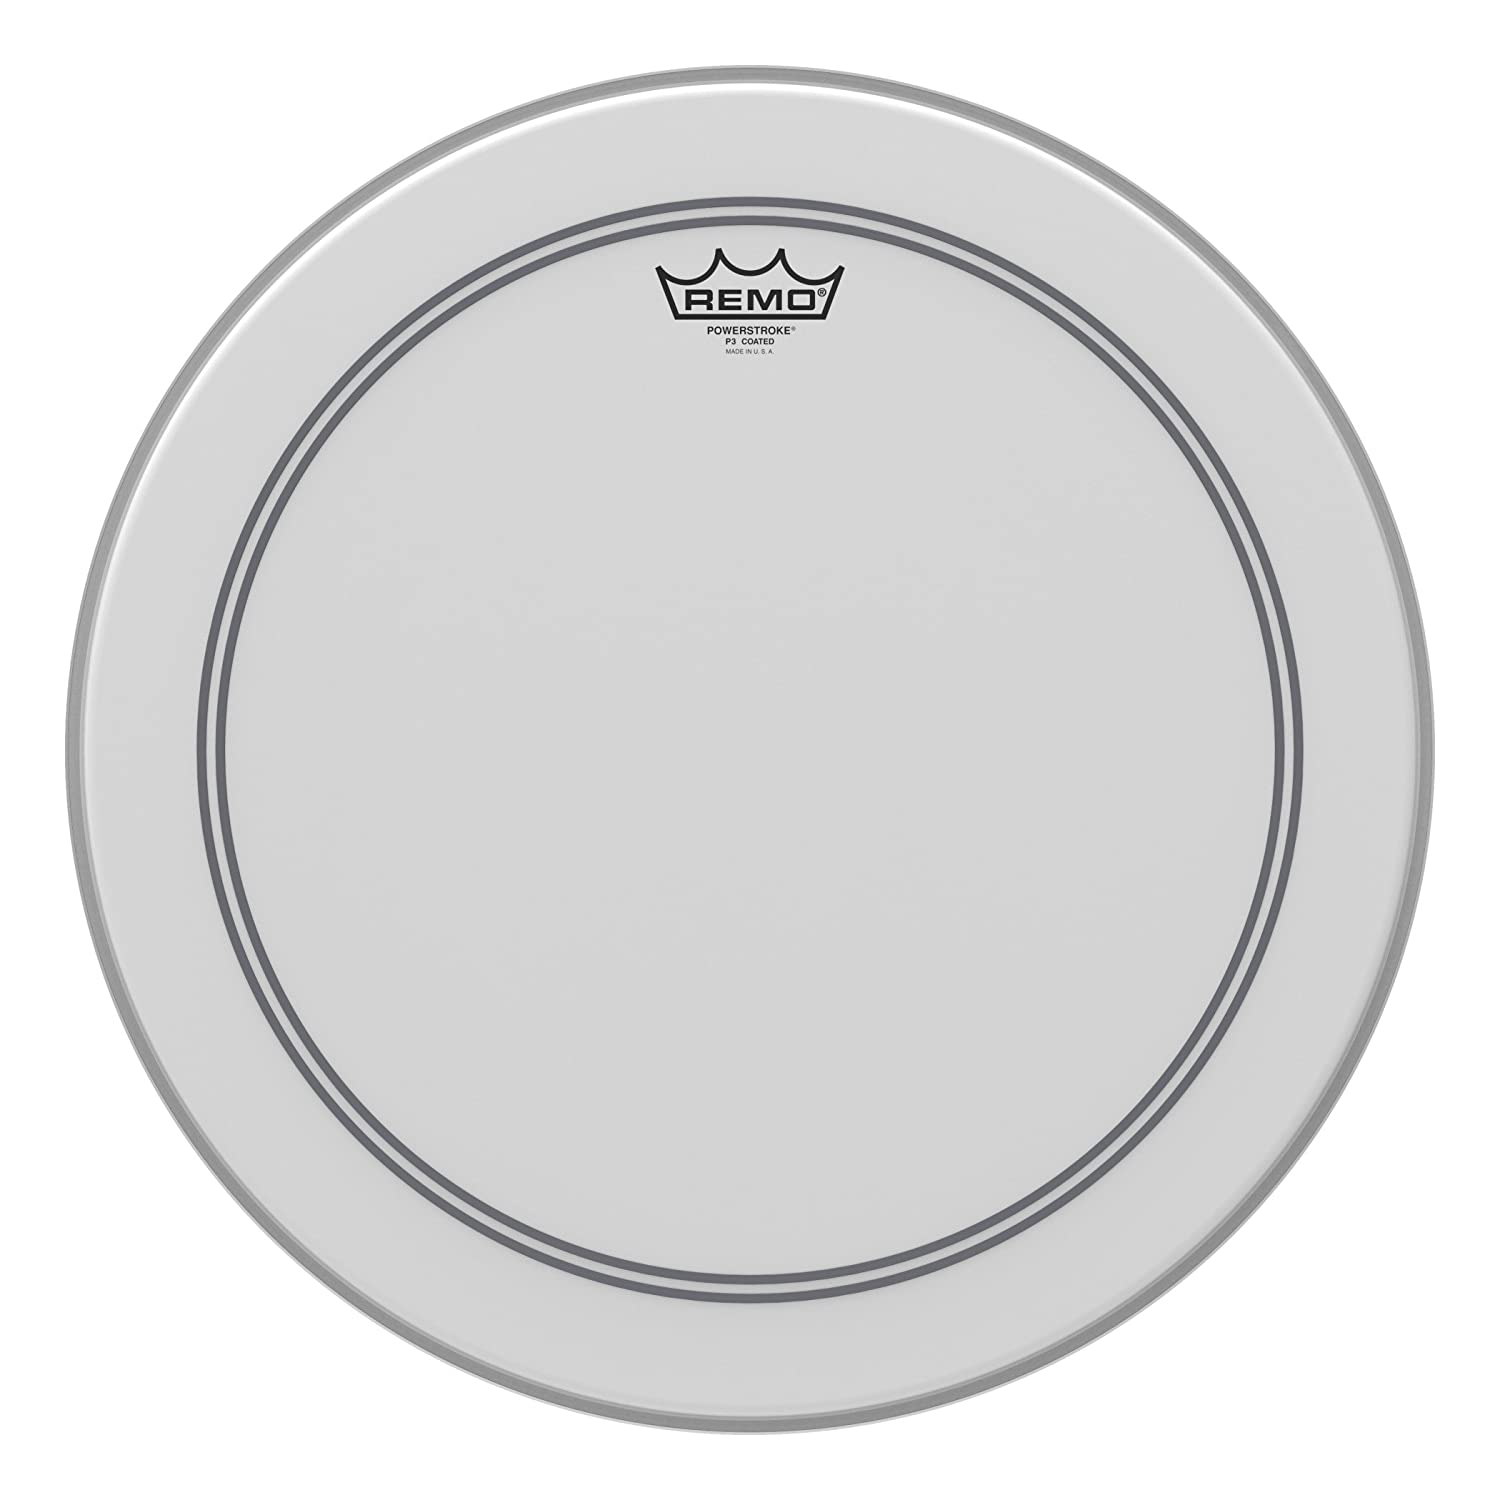 Remo Powerstroke P3 Coated Bass Drumhead, 18